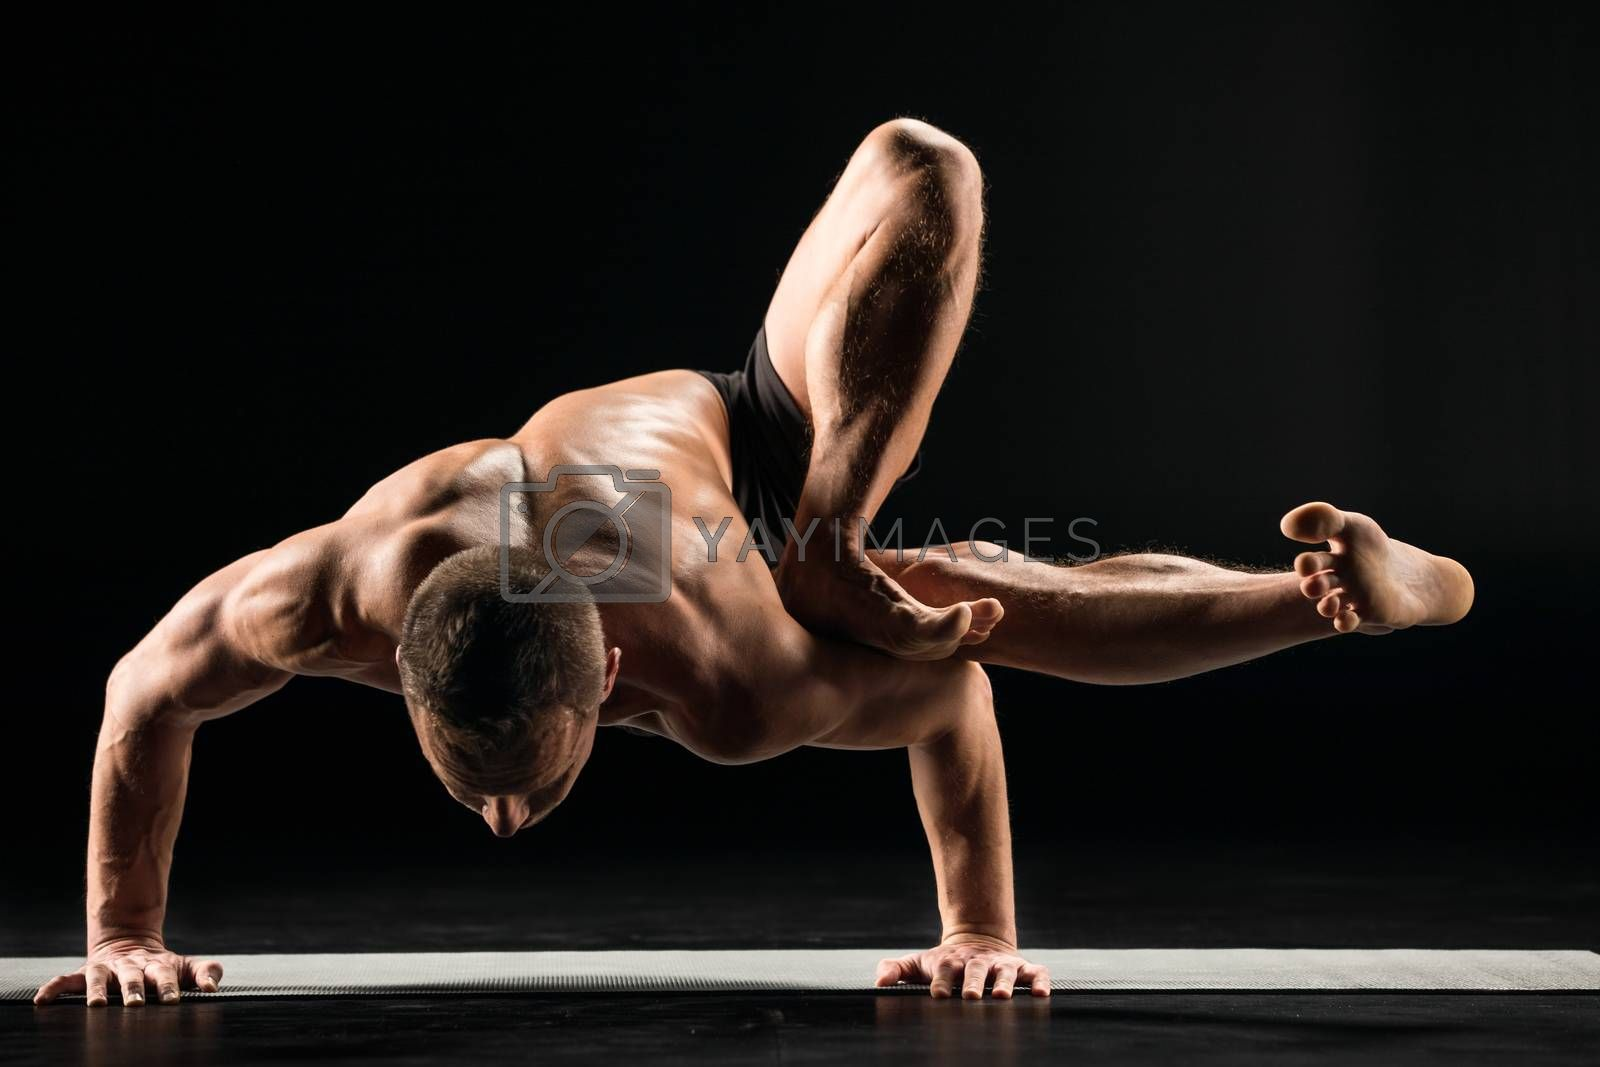 Young man practicing yoga doing an asana astavakrasana or hand standing pose on yoga mat